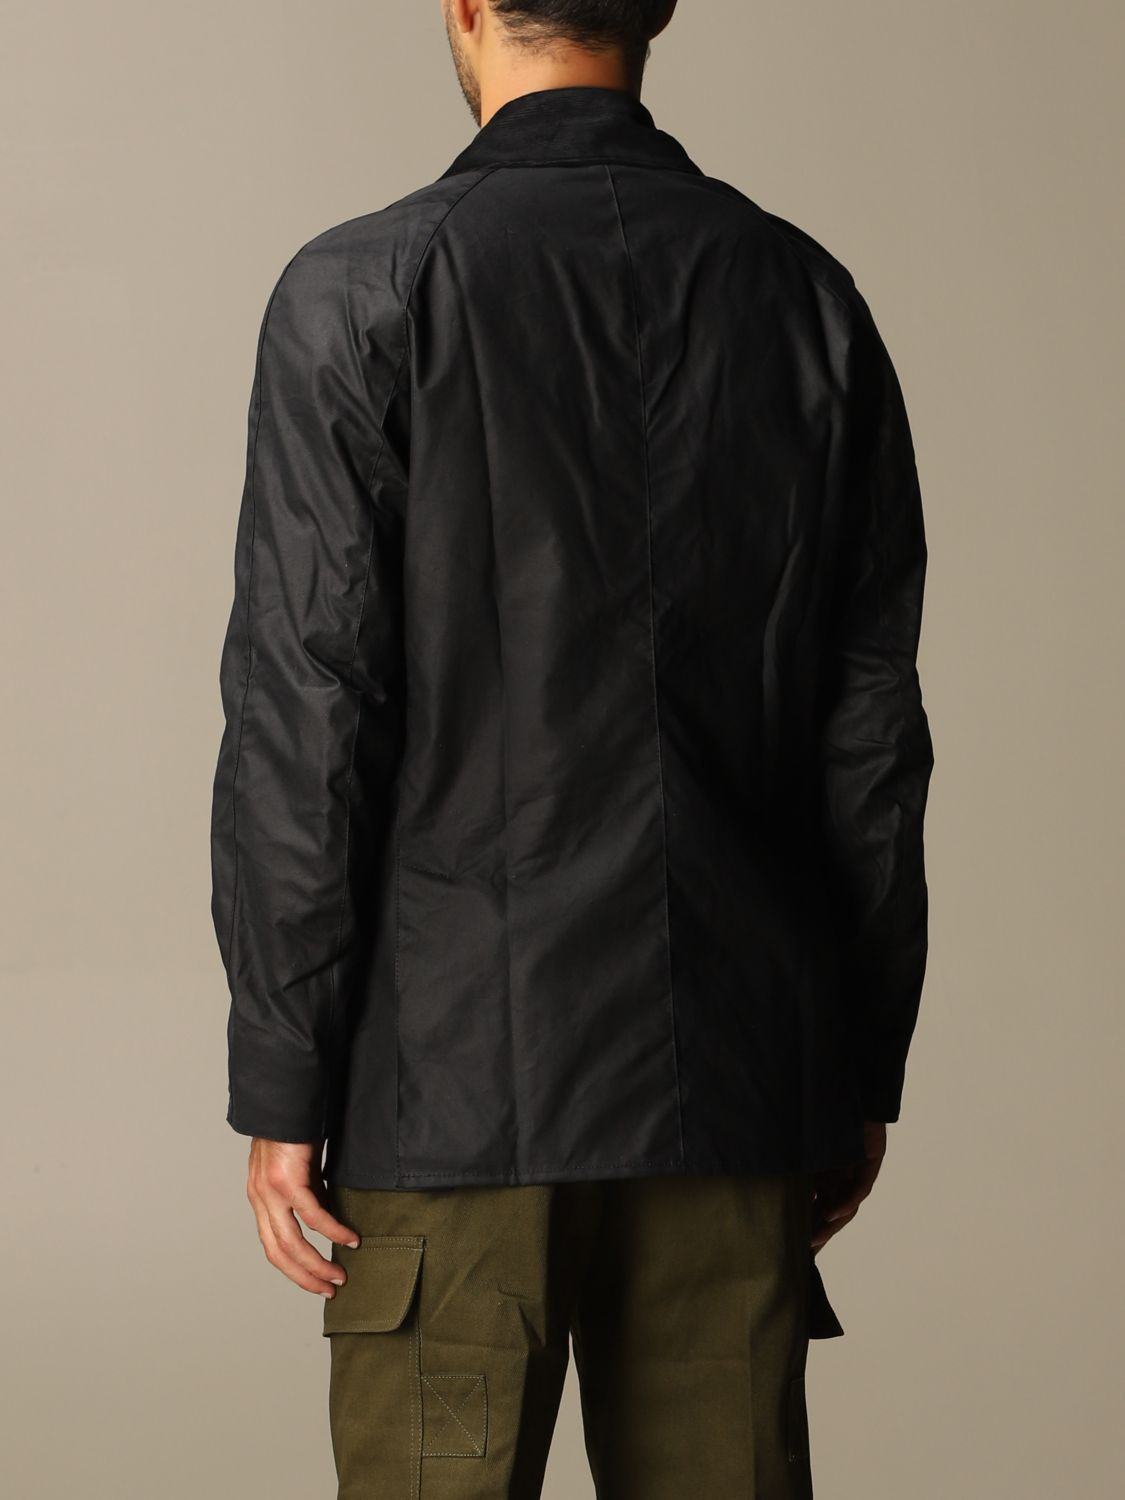 Giacca Barbour: Giacca Ashby Barbour in cotone spalmato blue 3